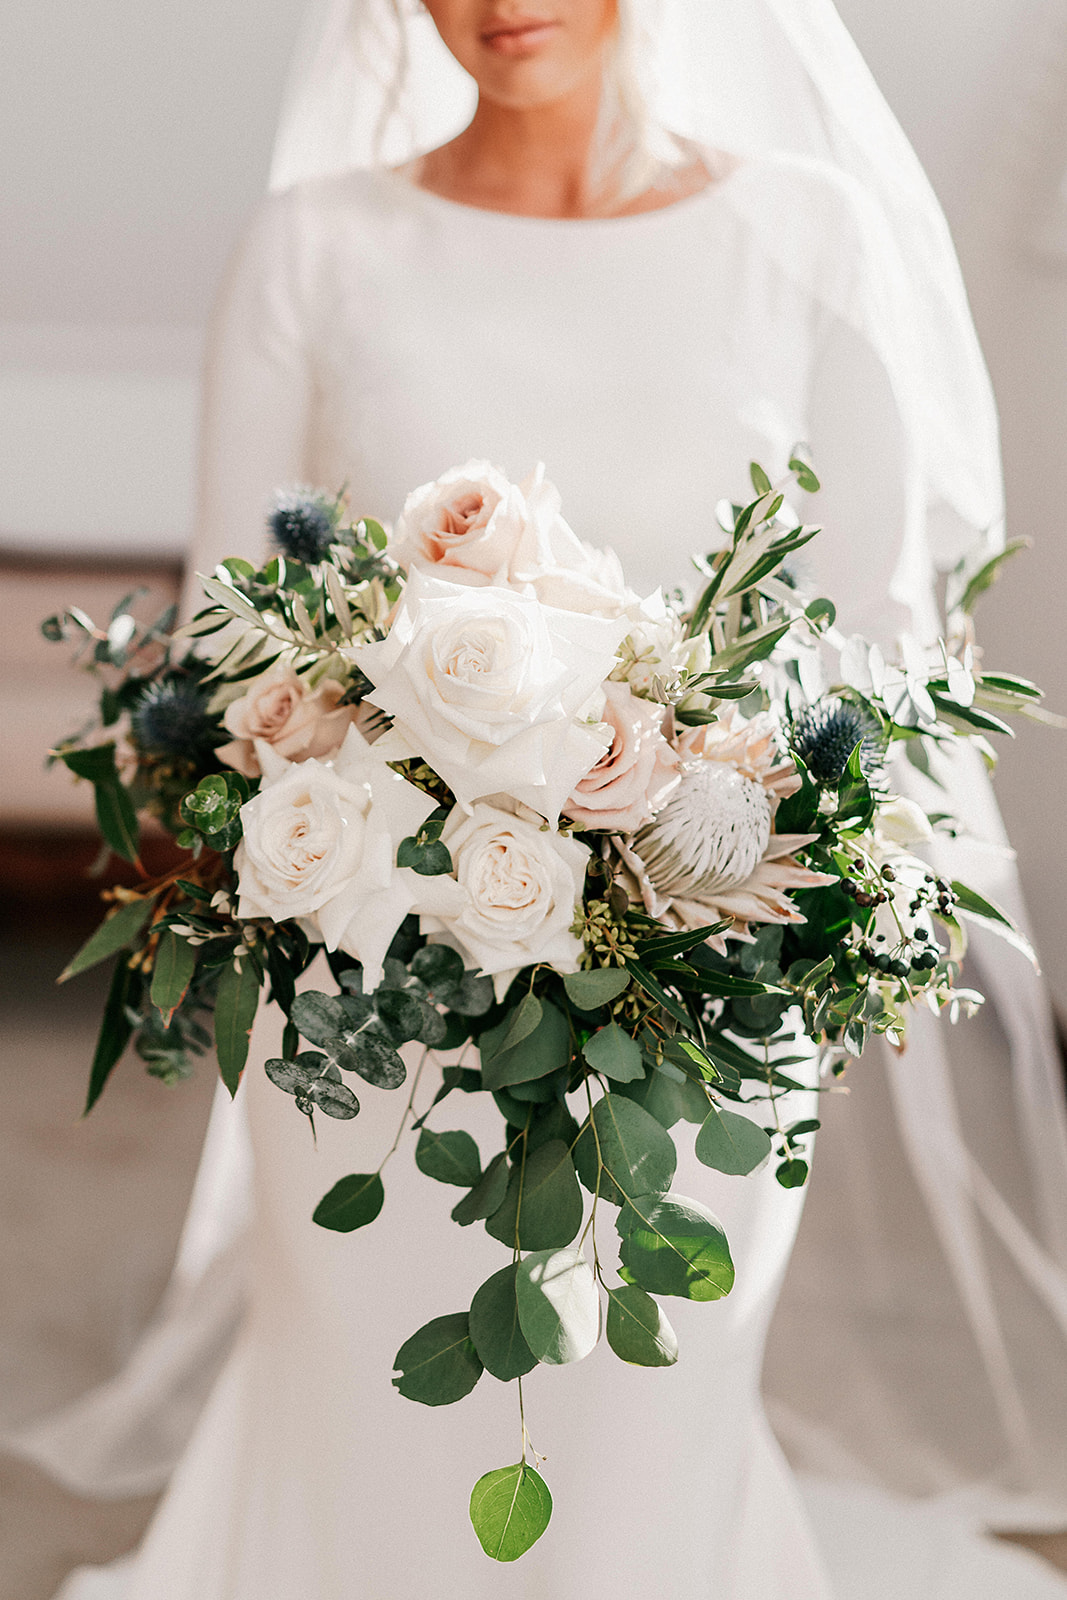 Blush Pink amd White Roses with Rustic Sage Green Wedding Flowers